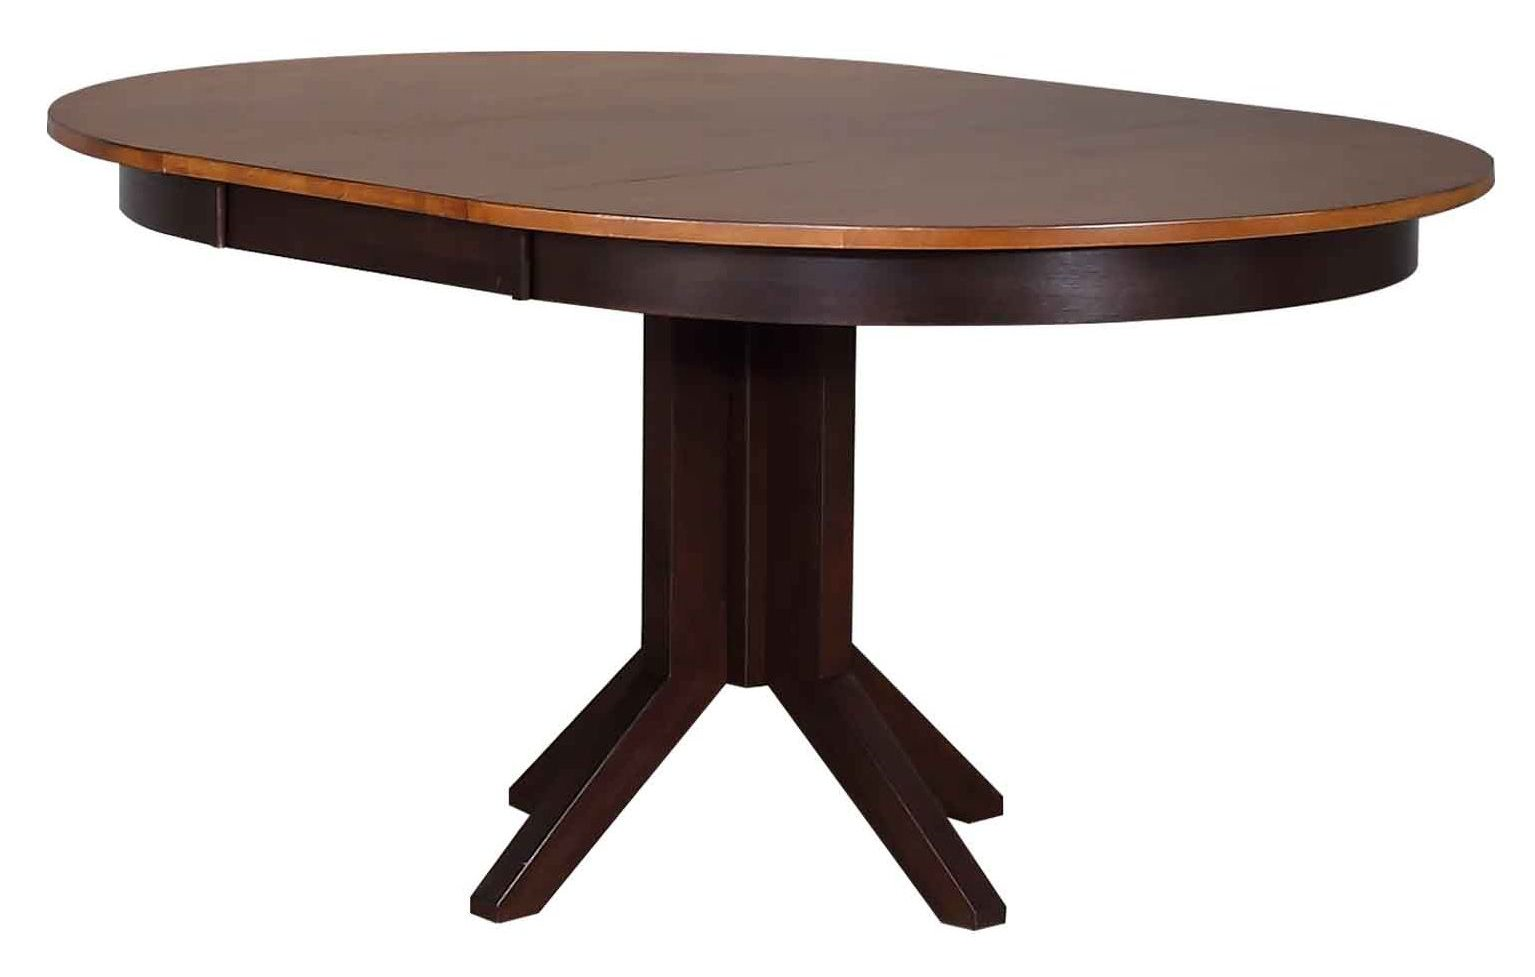 extendable small kitchen dining tables you love contemporary table unfinished round accent modern furniture for spaces black garden side threshold metal with wood top stand alone